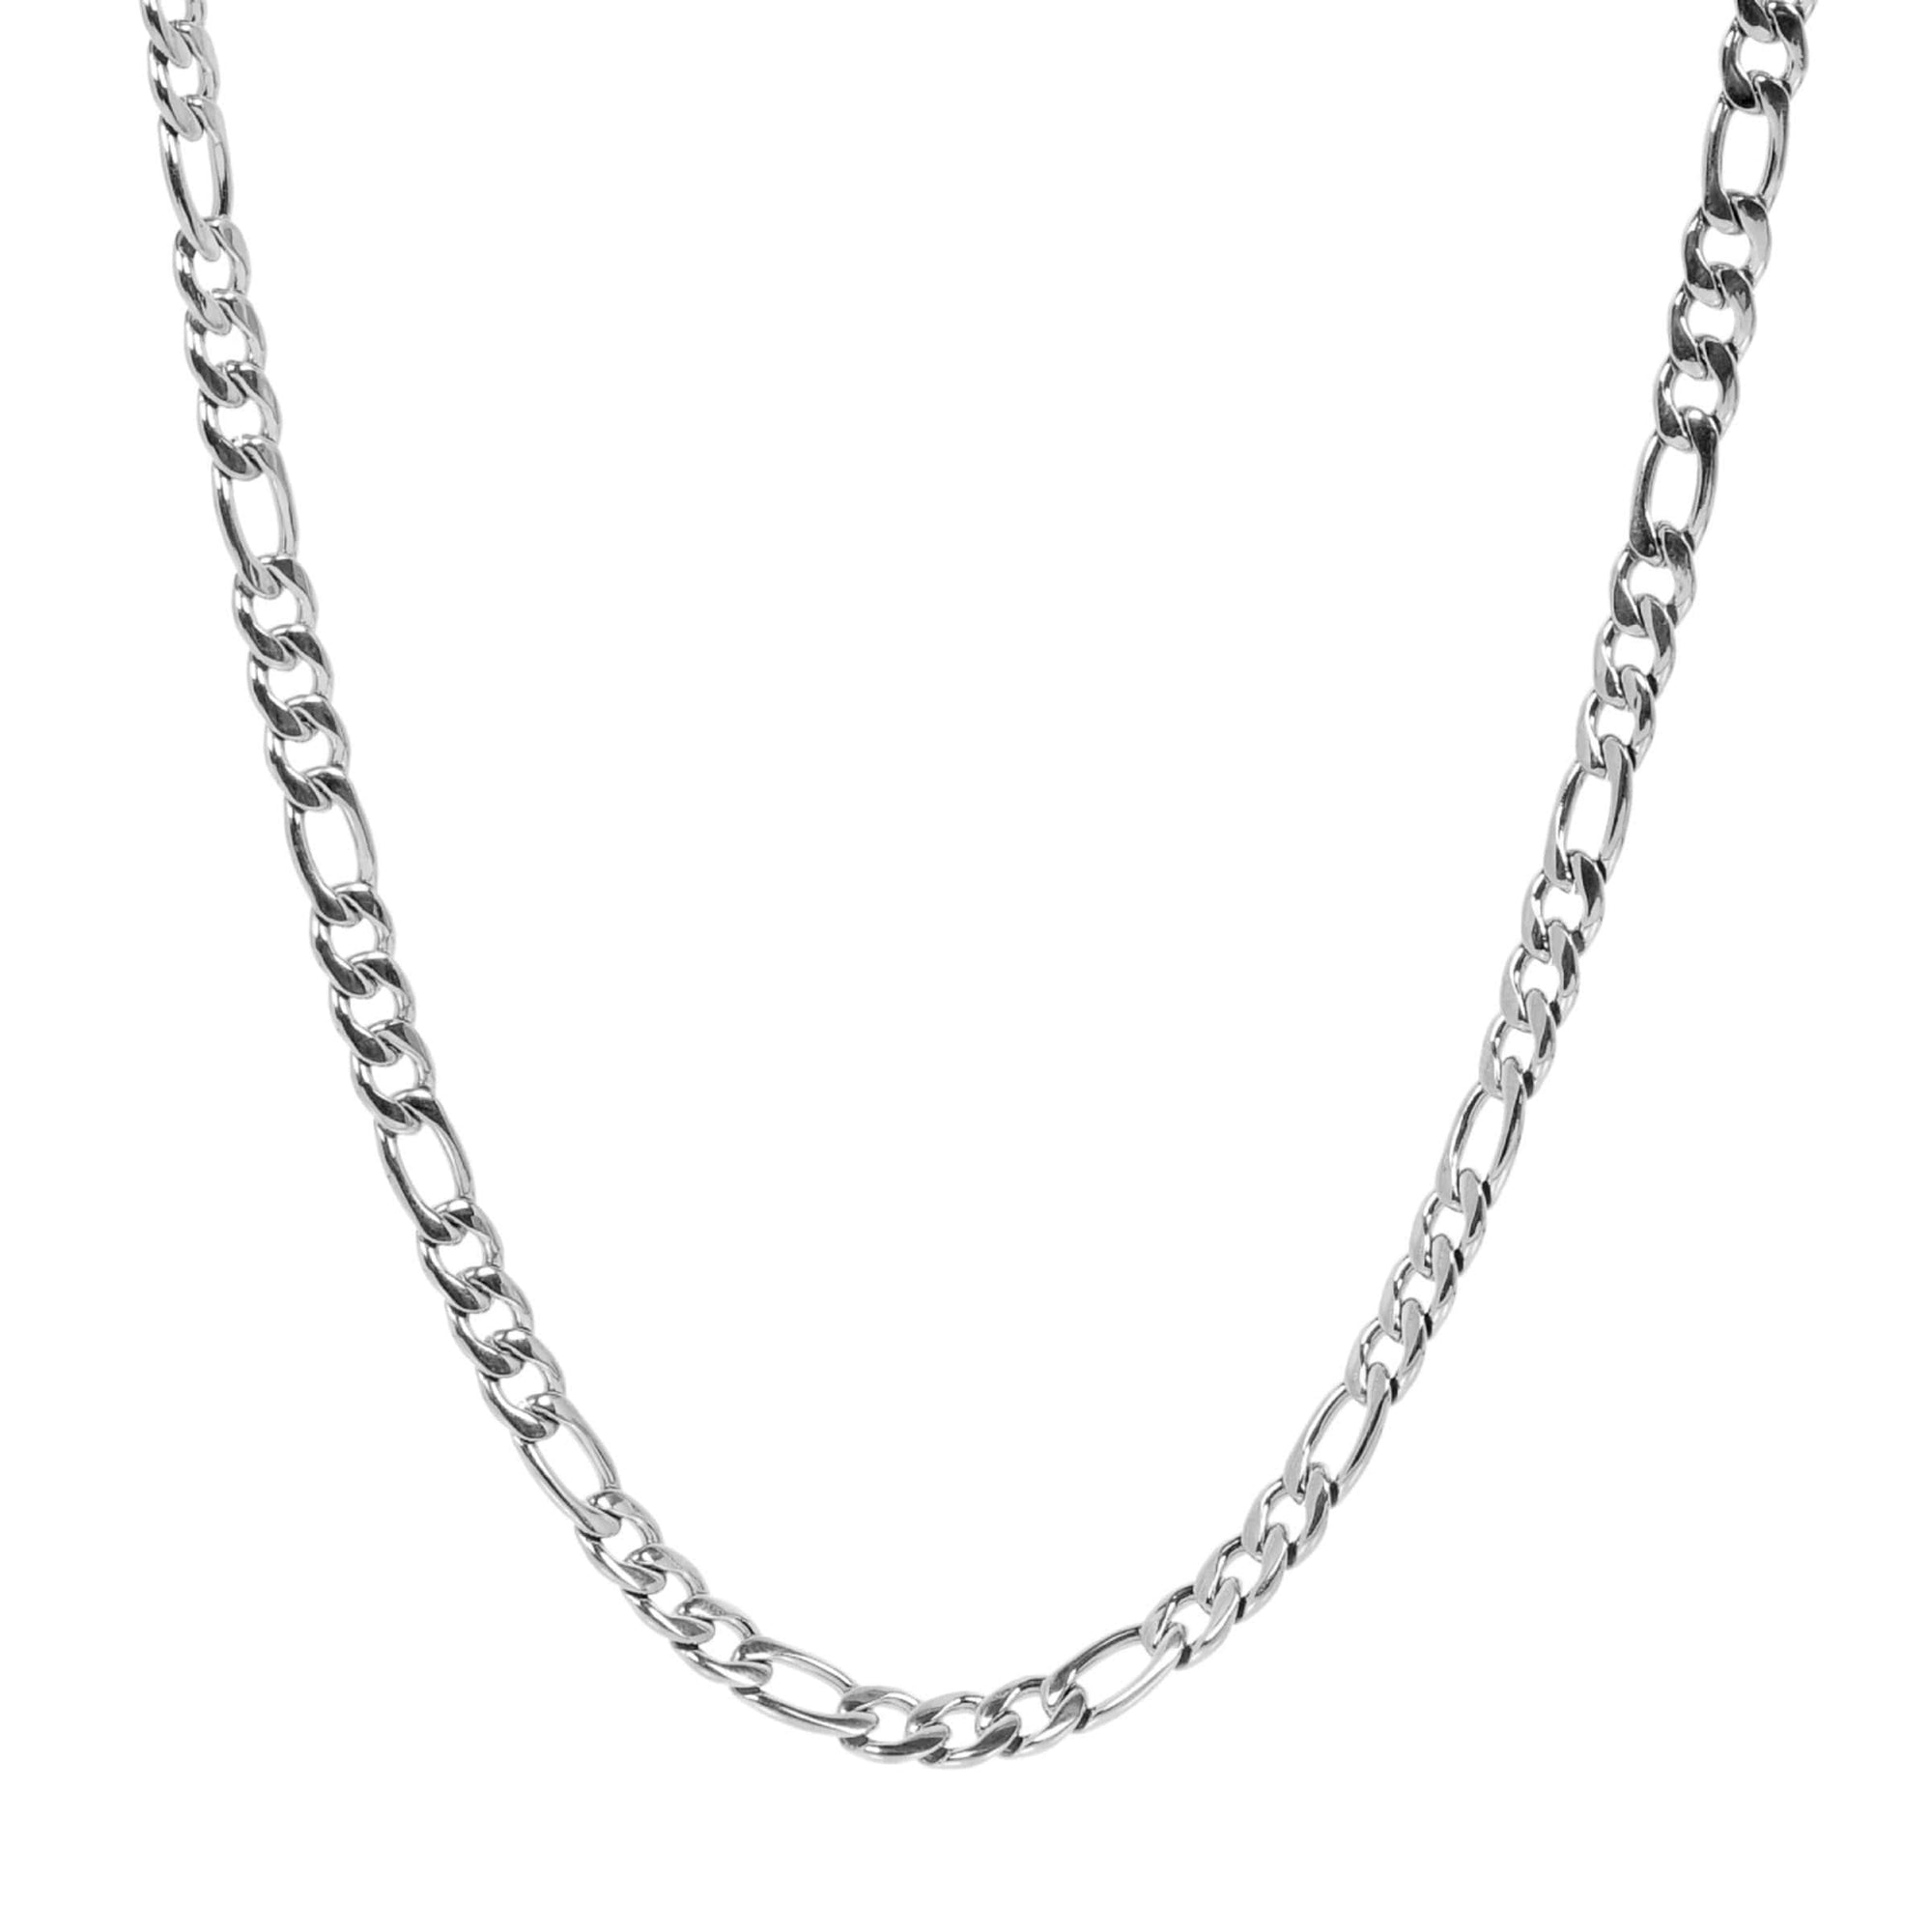 Men's 7mm Steel Figaro Link Necklace at Arman's Jewellers Kitchener